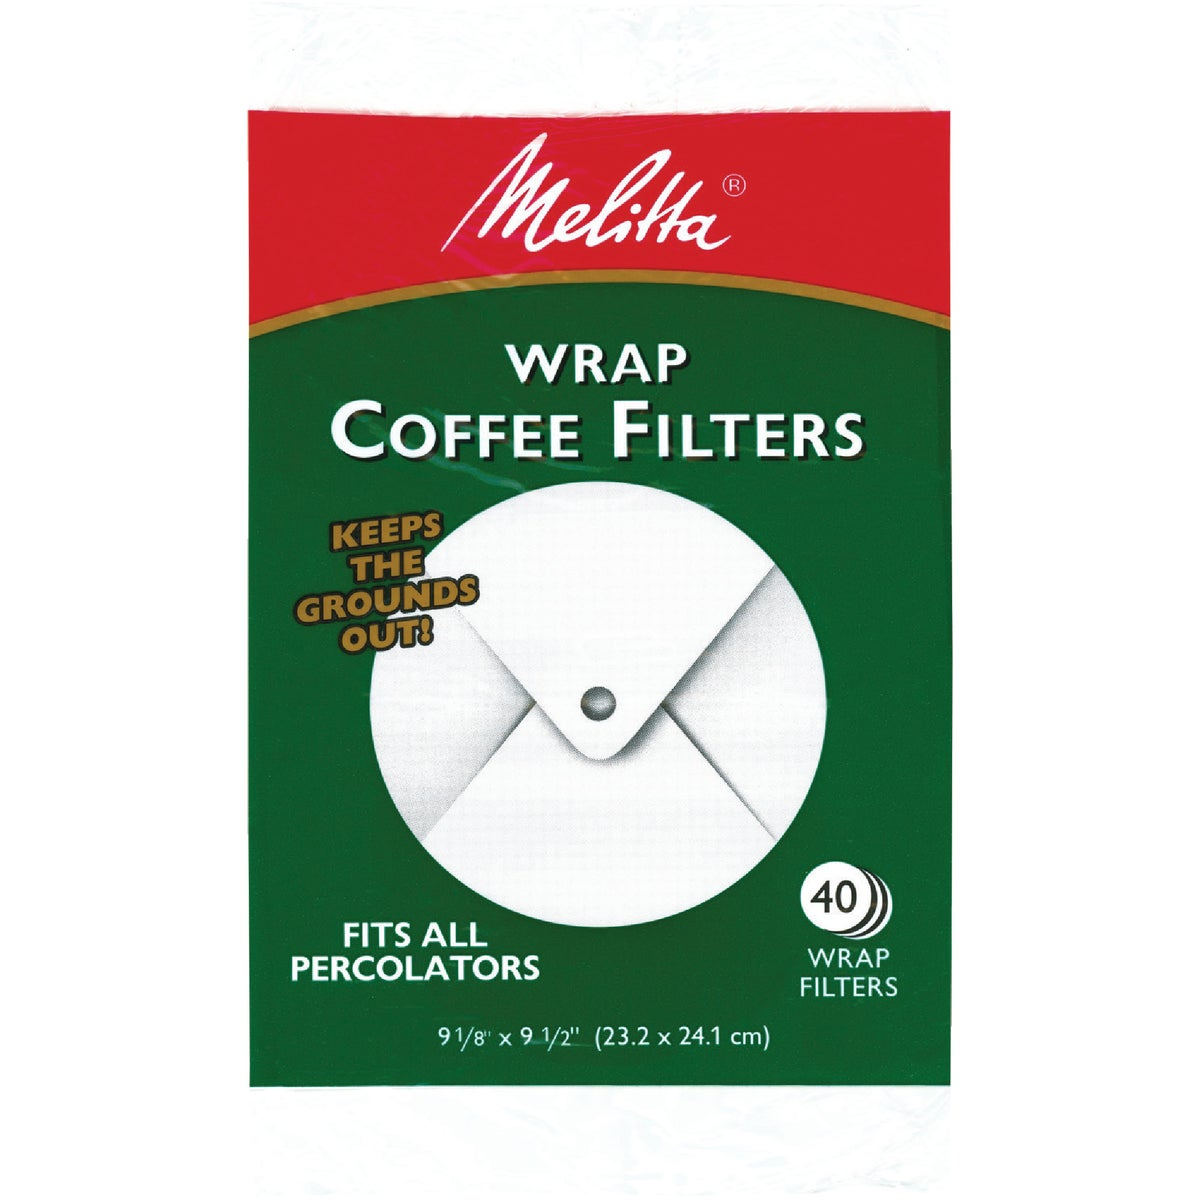 WRAP COFFEE FILTER